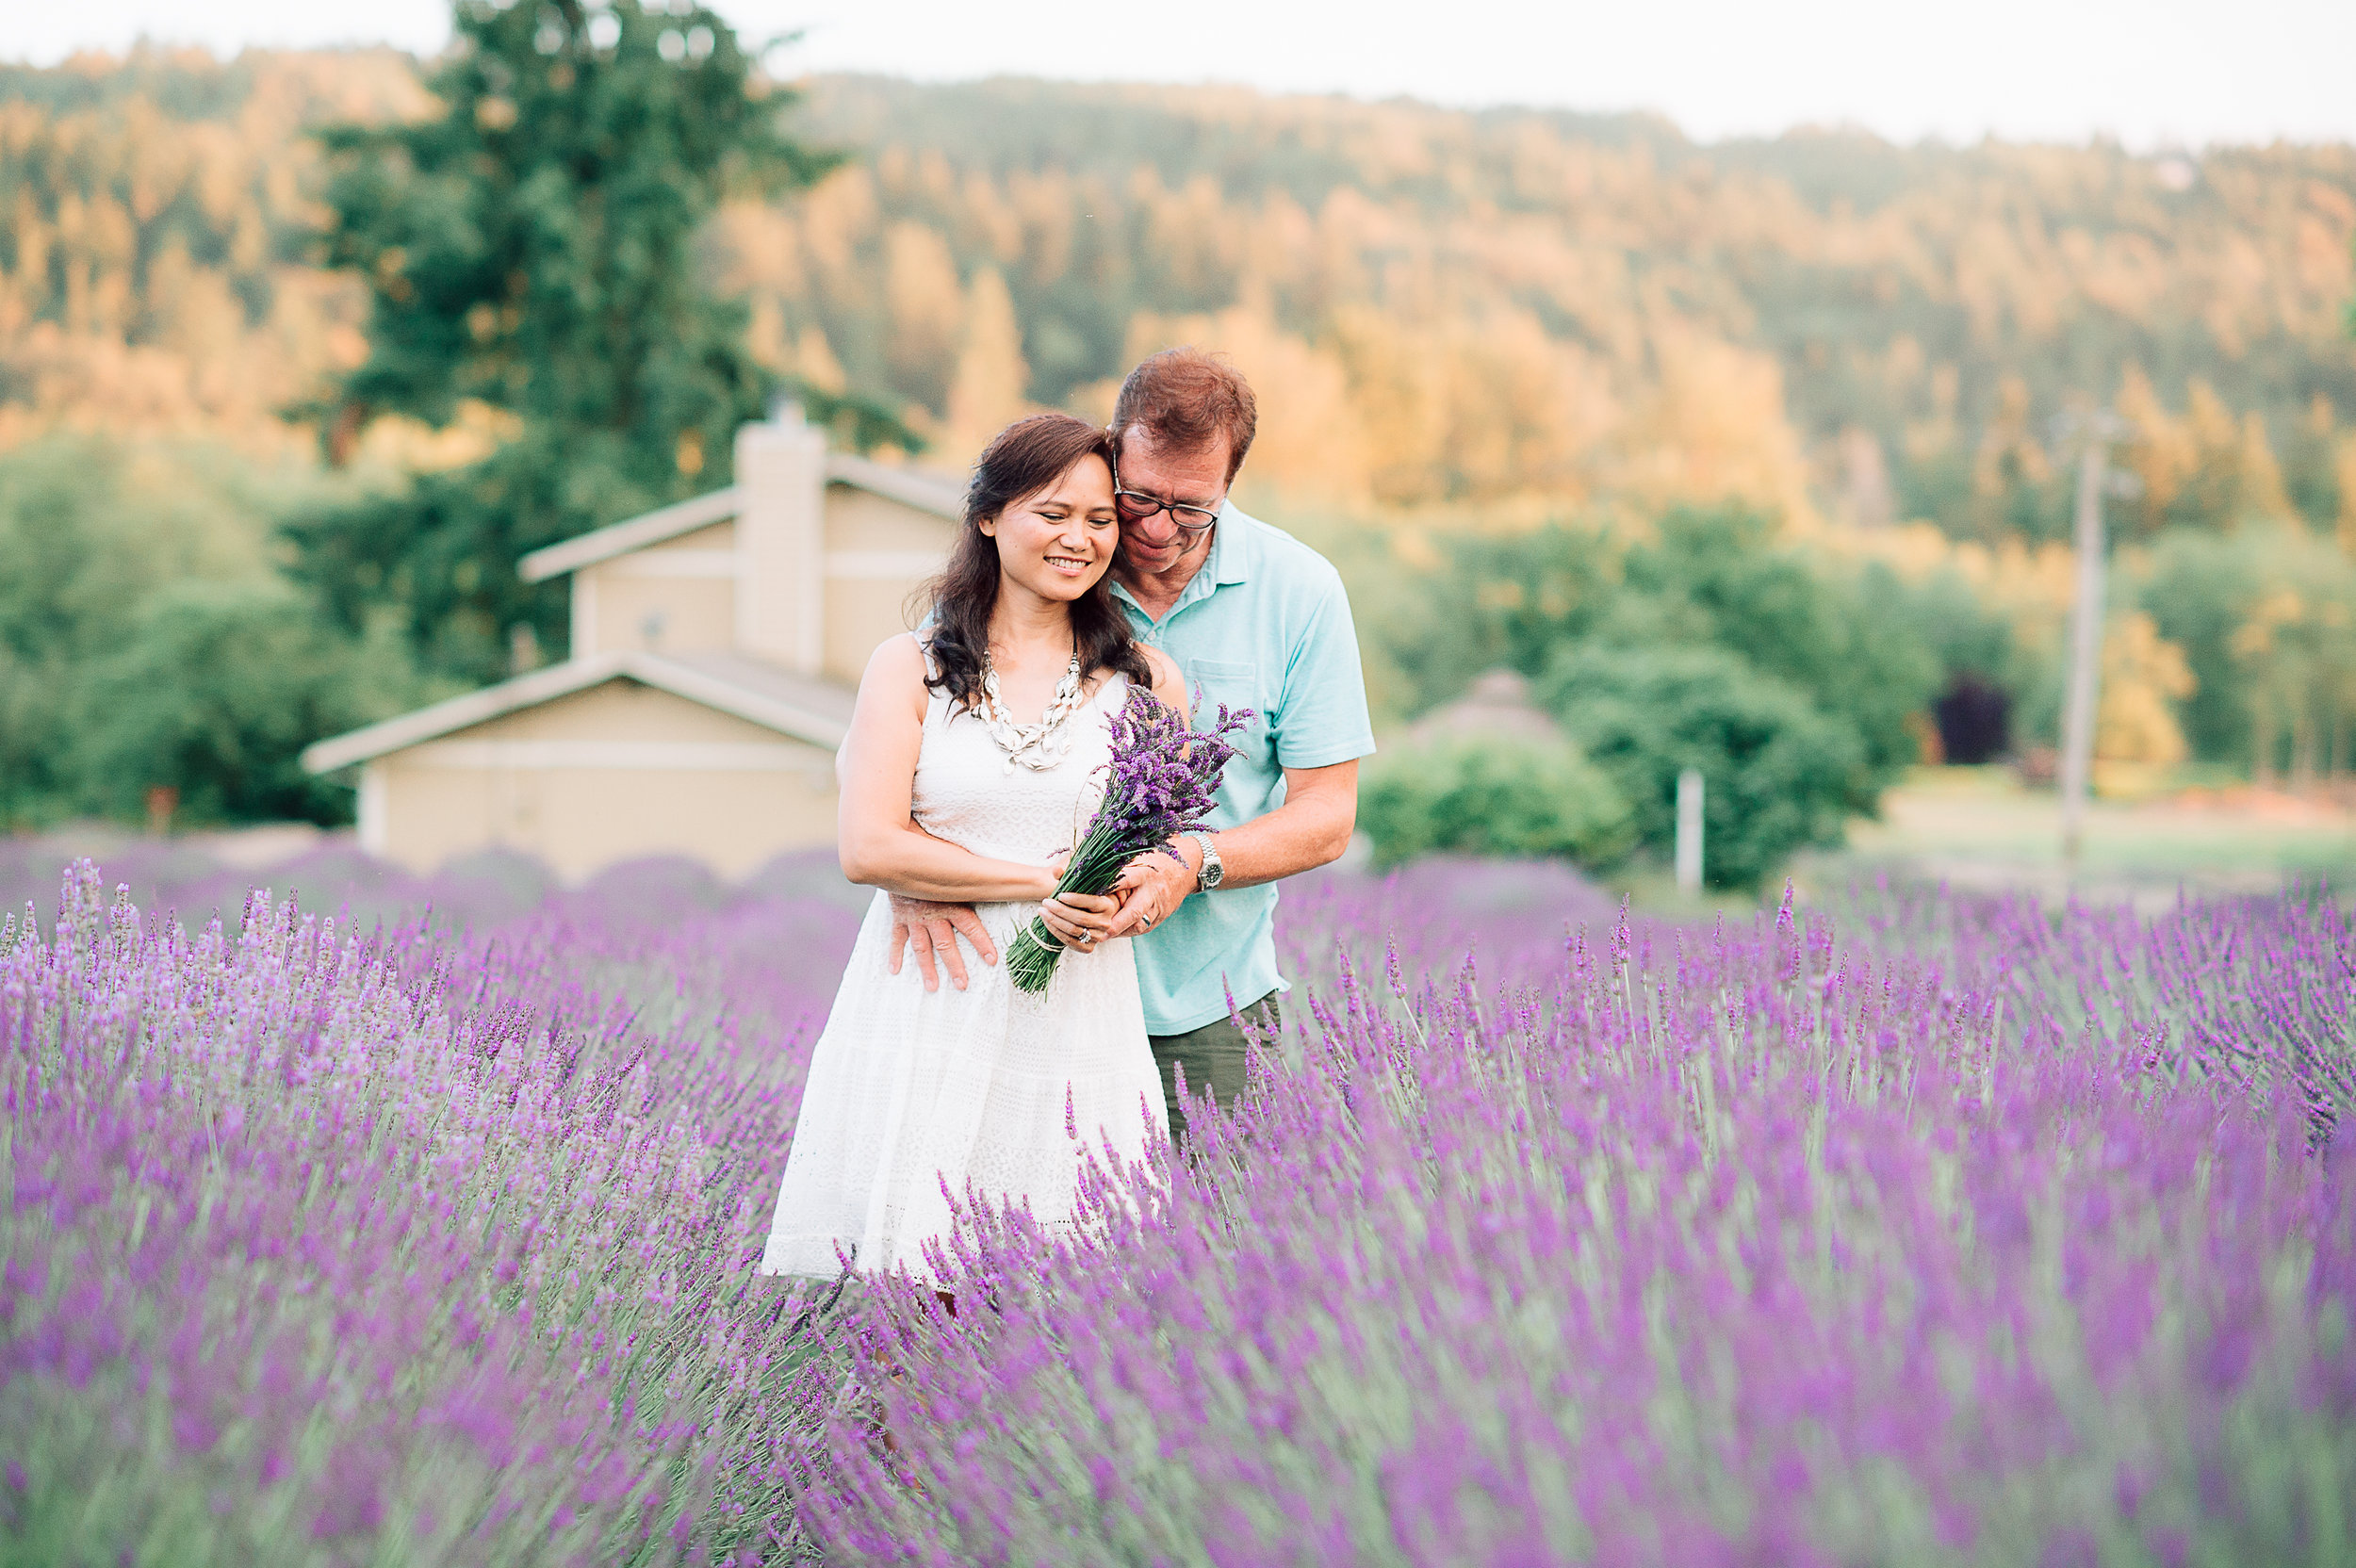 engagement_lavenderfield_youseephotography_LidiaOtto (65).jpg